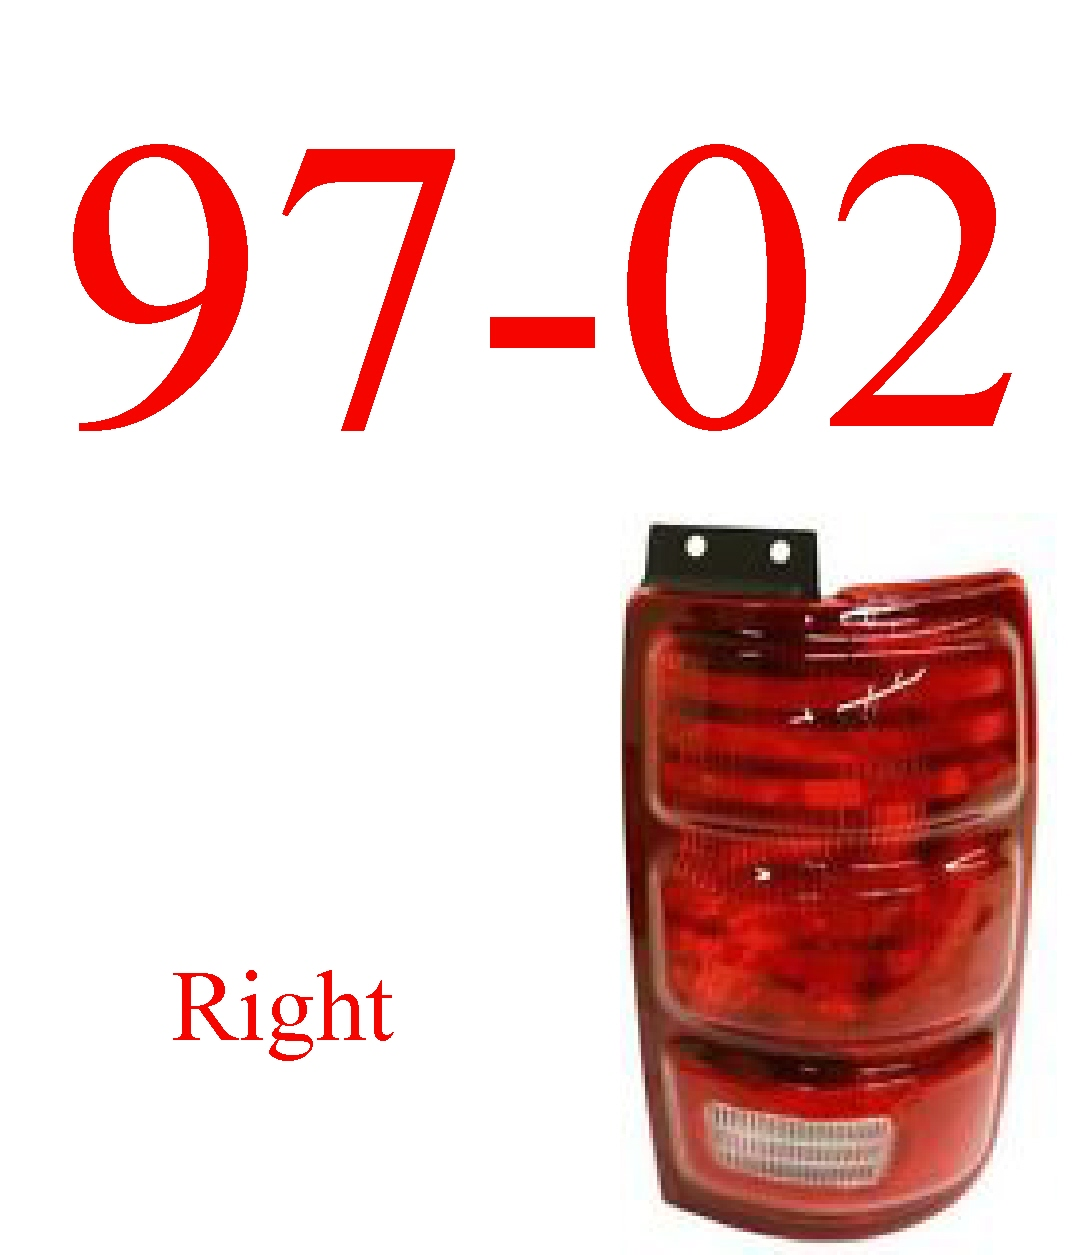 97-02 Ford Expedition Right Tail Light Assembly